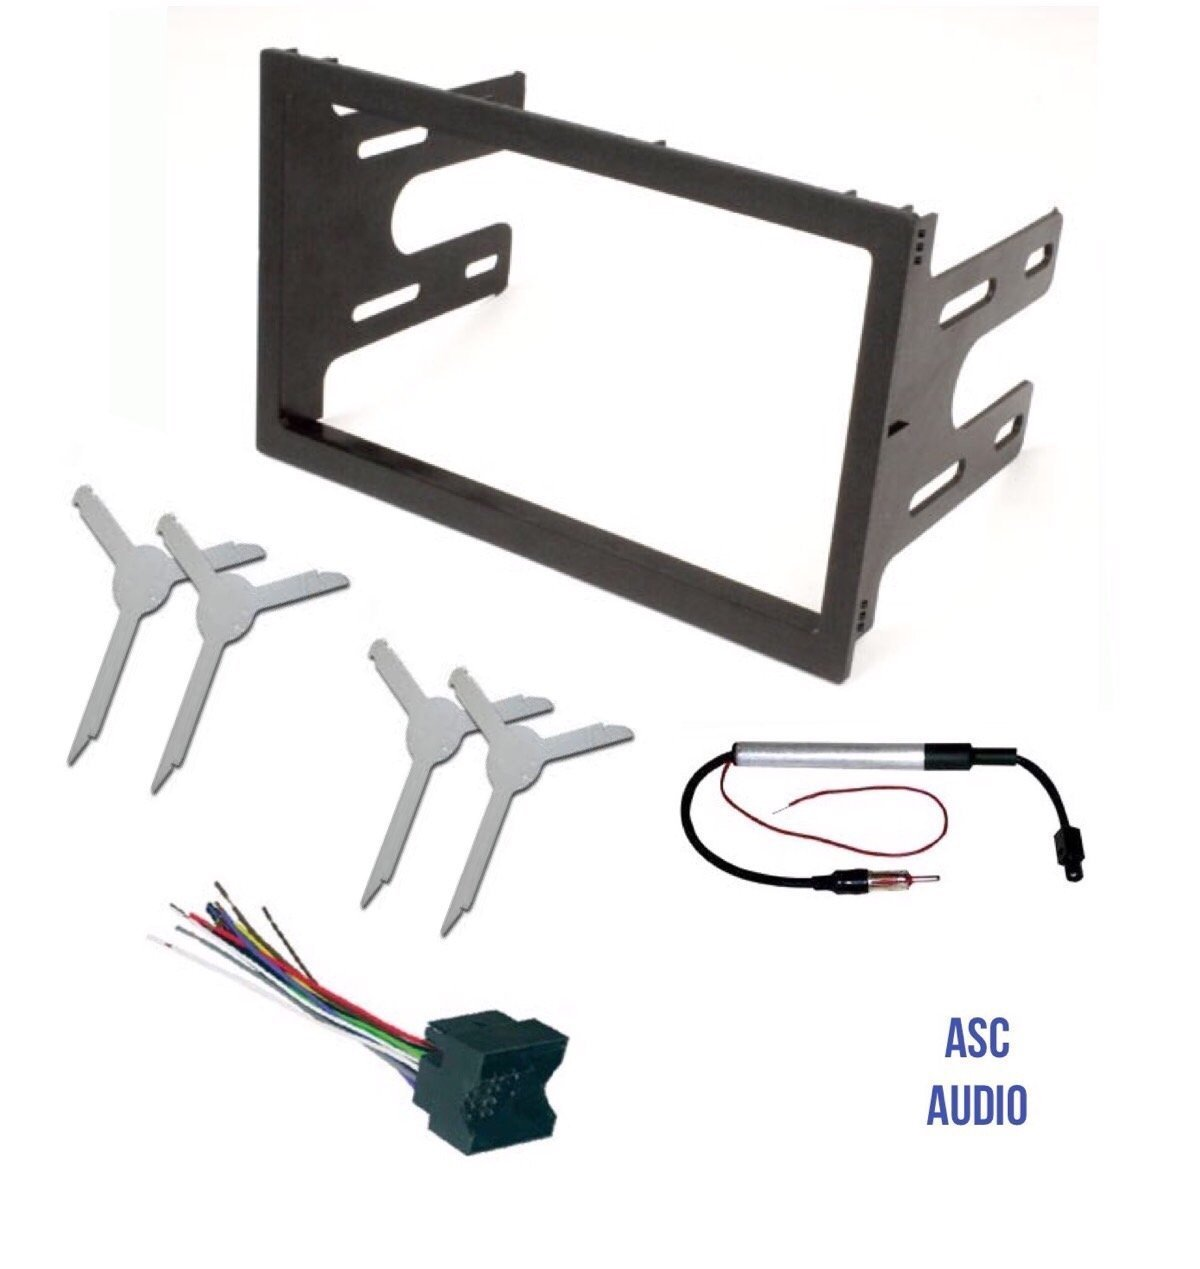 Asc Audio Car Stereo Dash Kit Wire Harness Antenna Adapter And Automotive Wiring Tools Radio Remove Tool For Installing